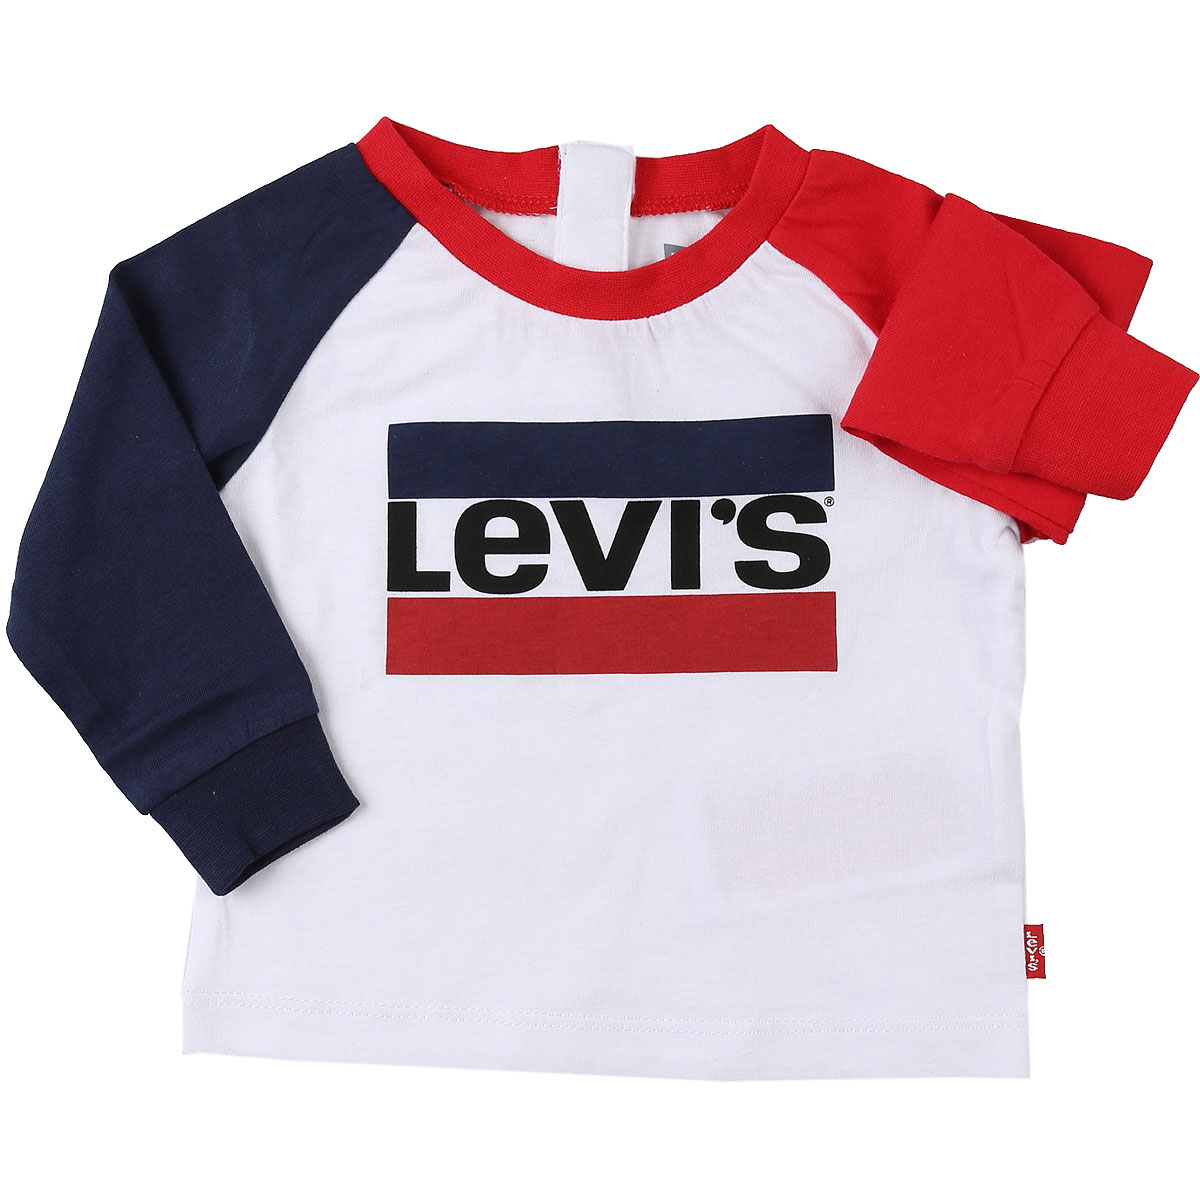 Levis Baby T-Shirt for Boys On Sale, White, Cotton, 2019, 18M 2Y 3Y 6M 9M